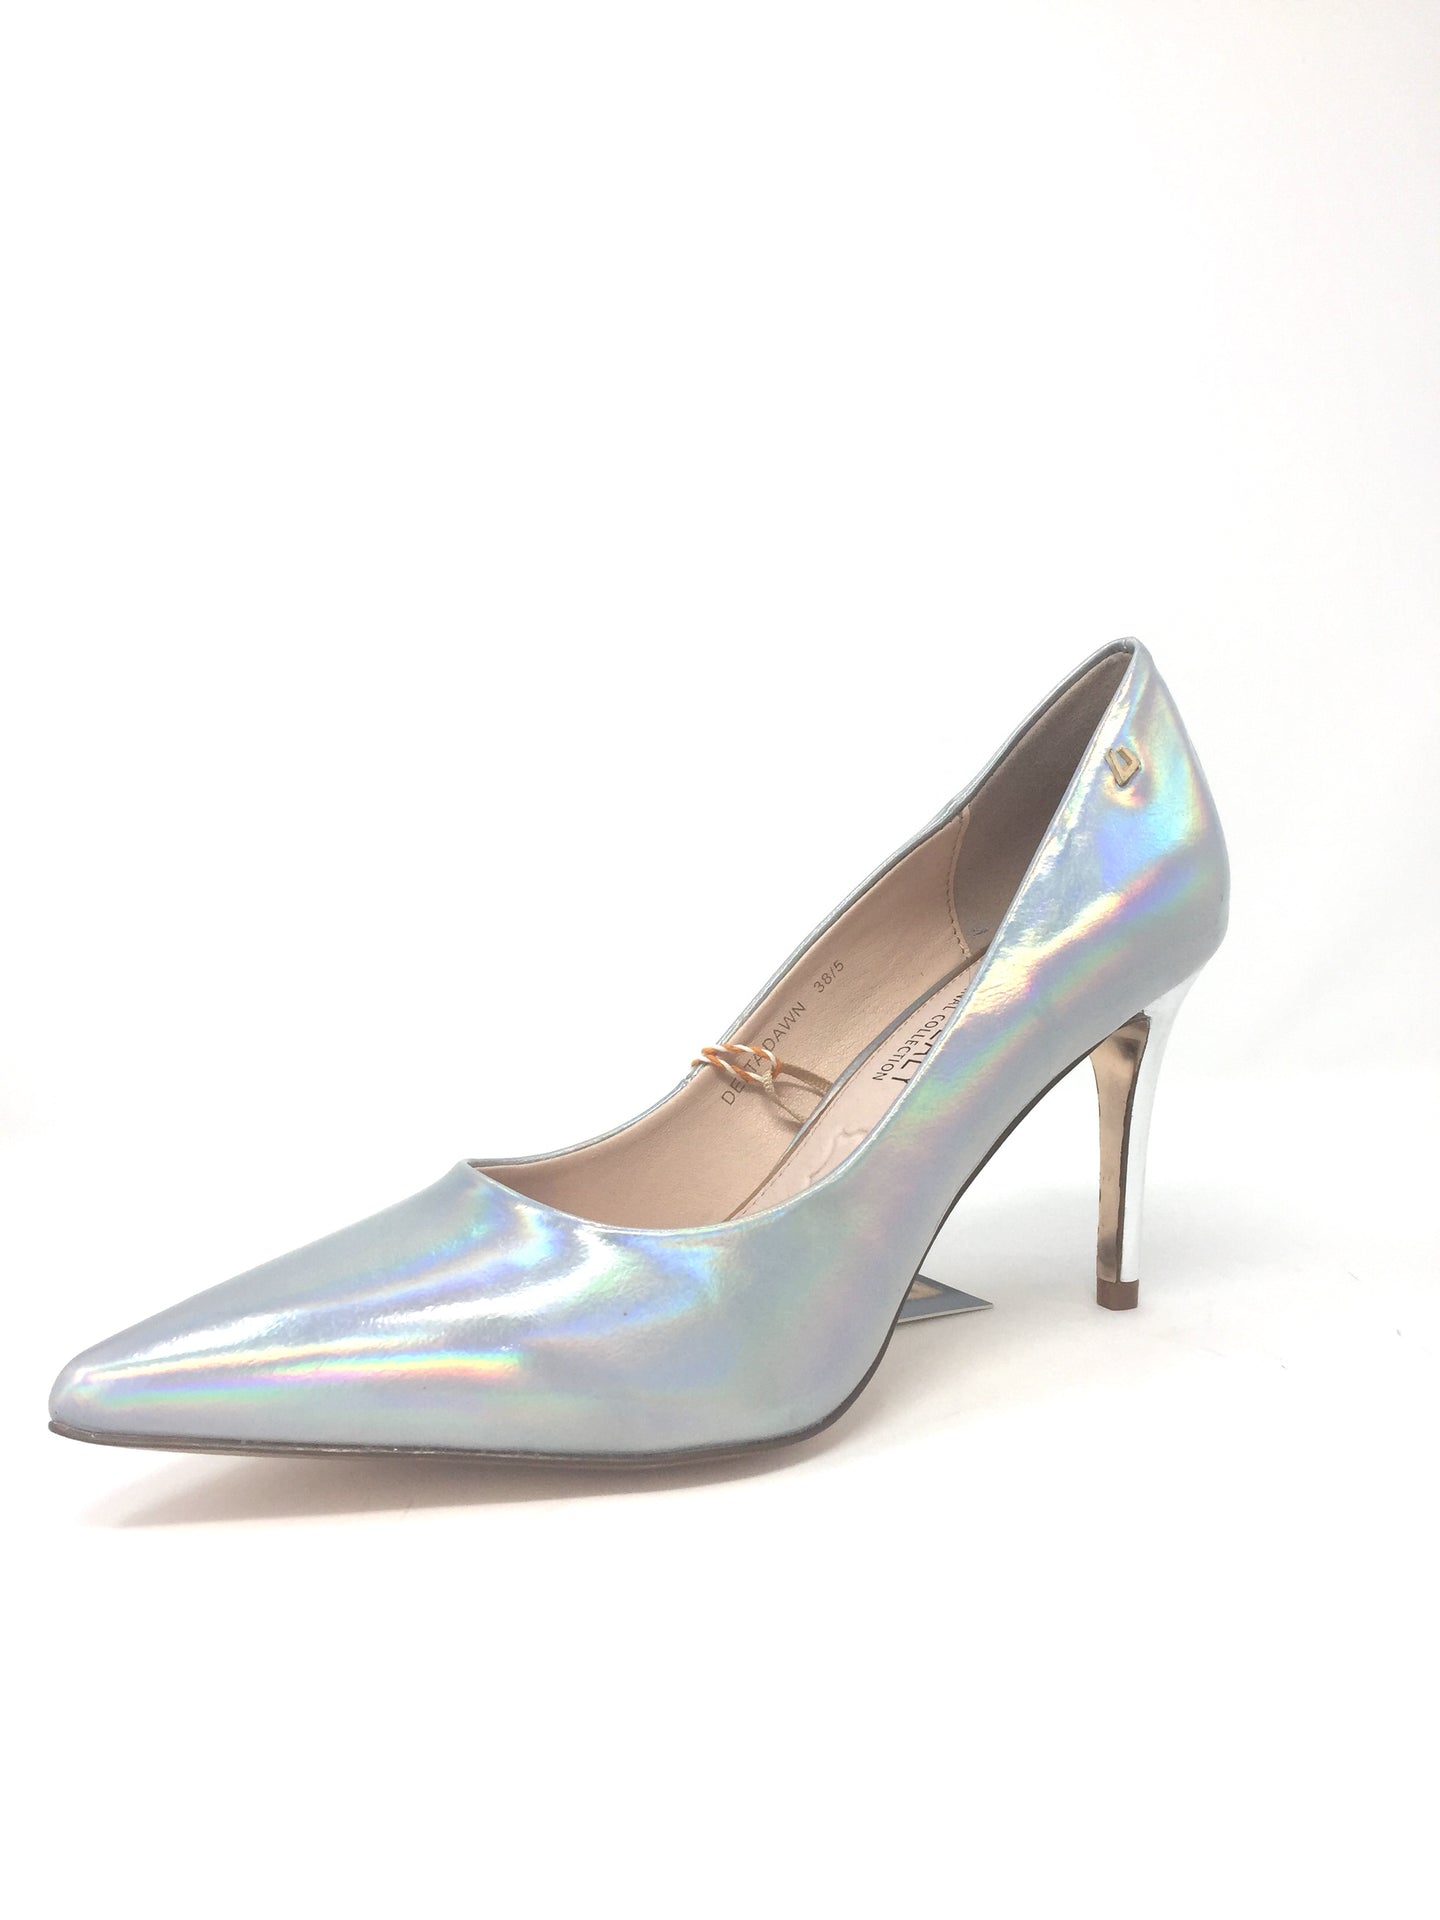 Delta Dawn | Obalescent & Aurora Pink | Una Healy Court Shoe for sale online ireland